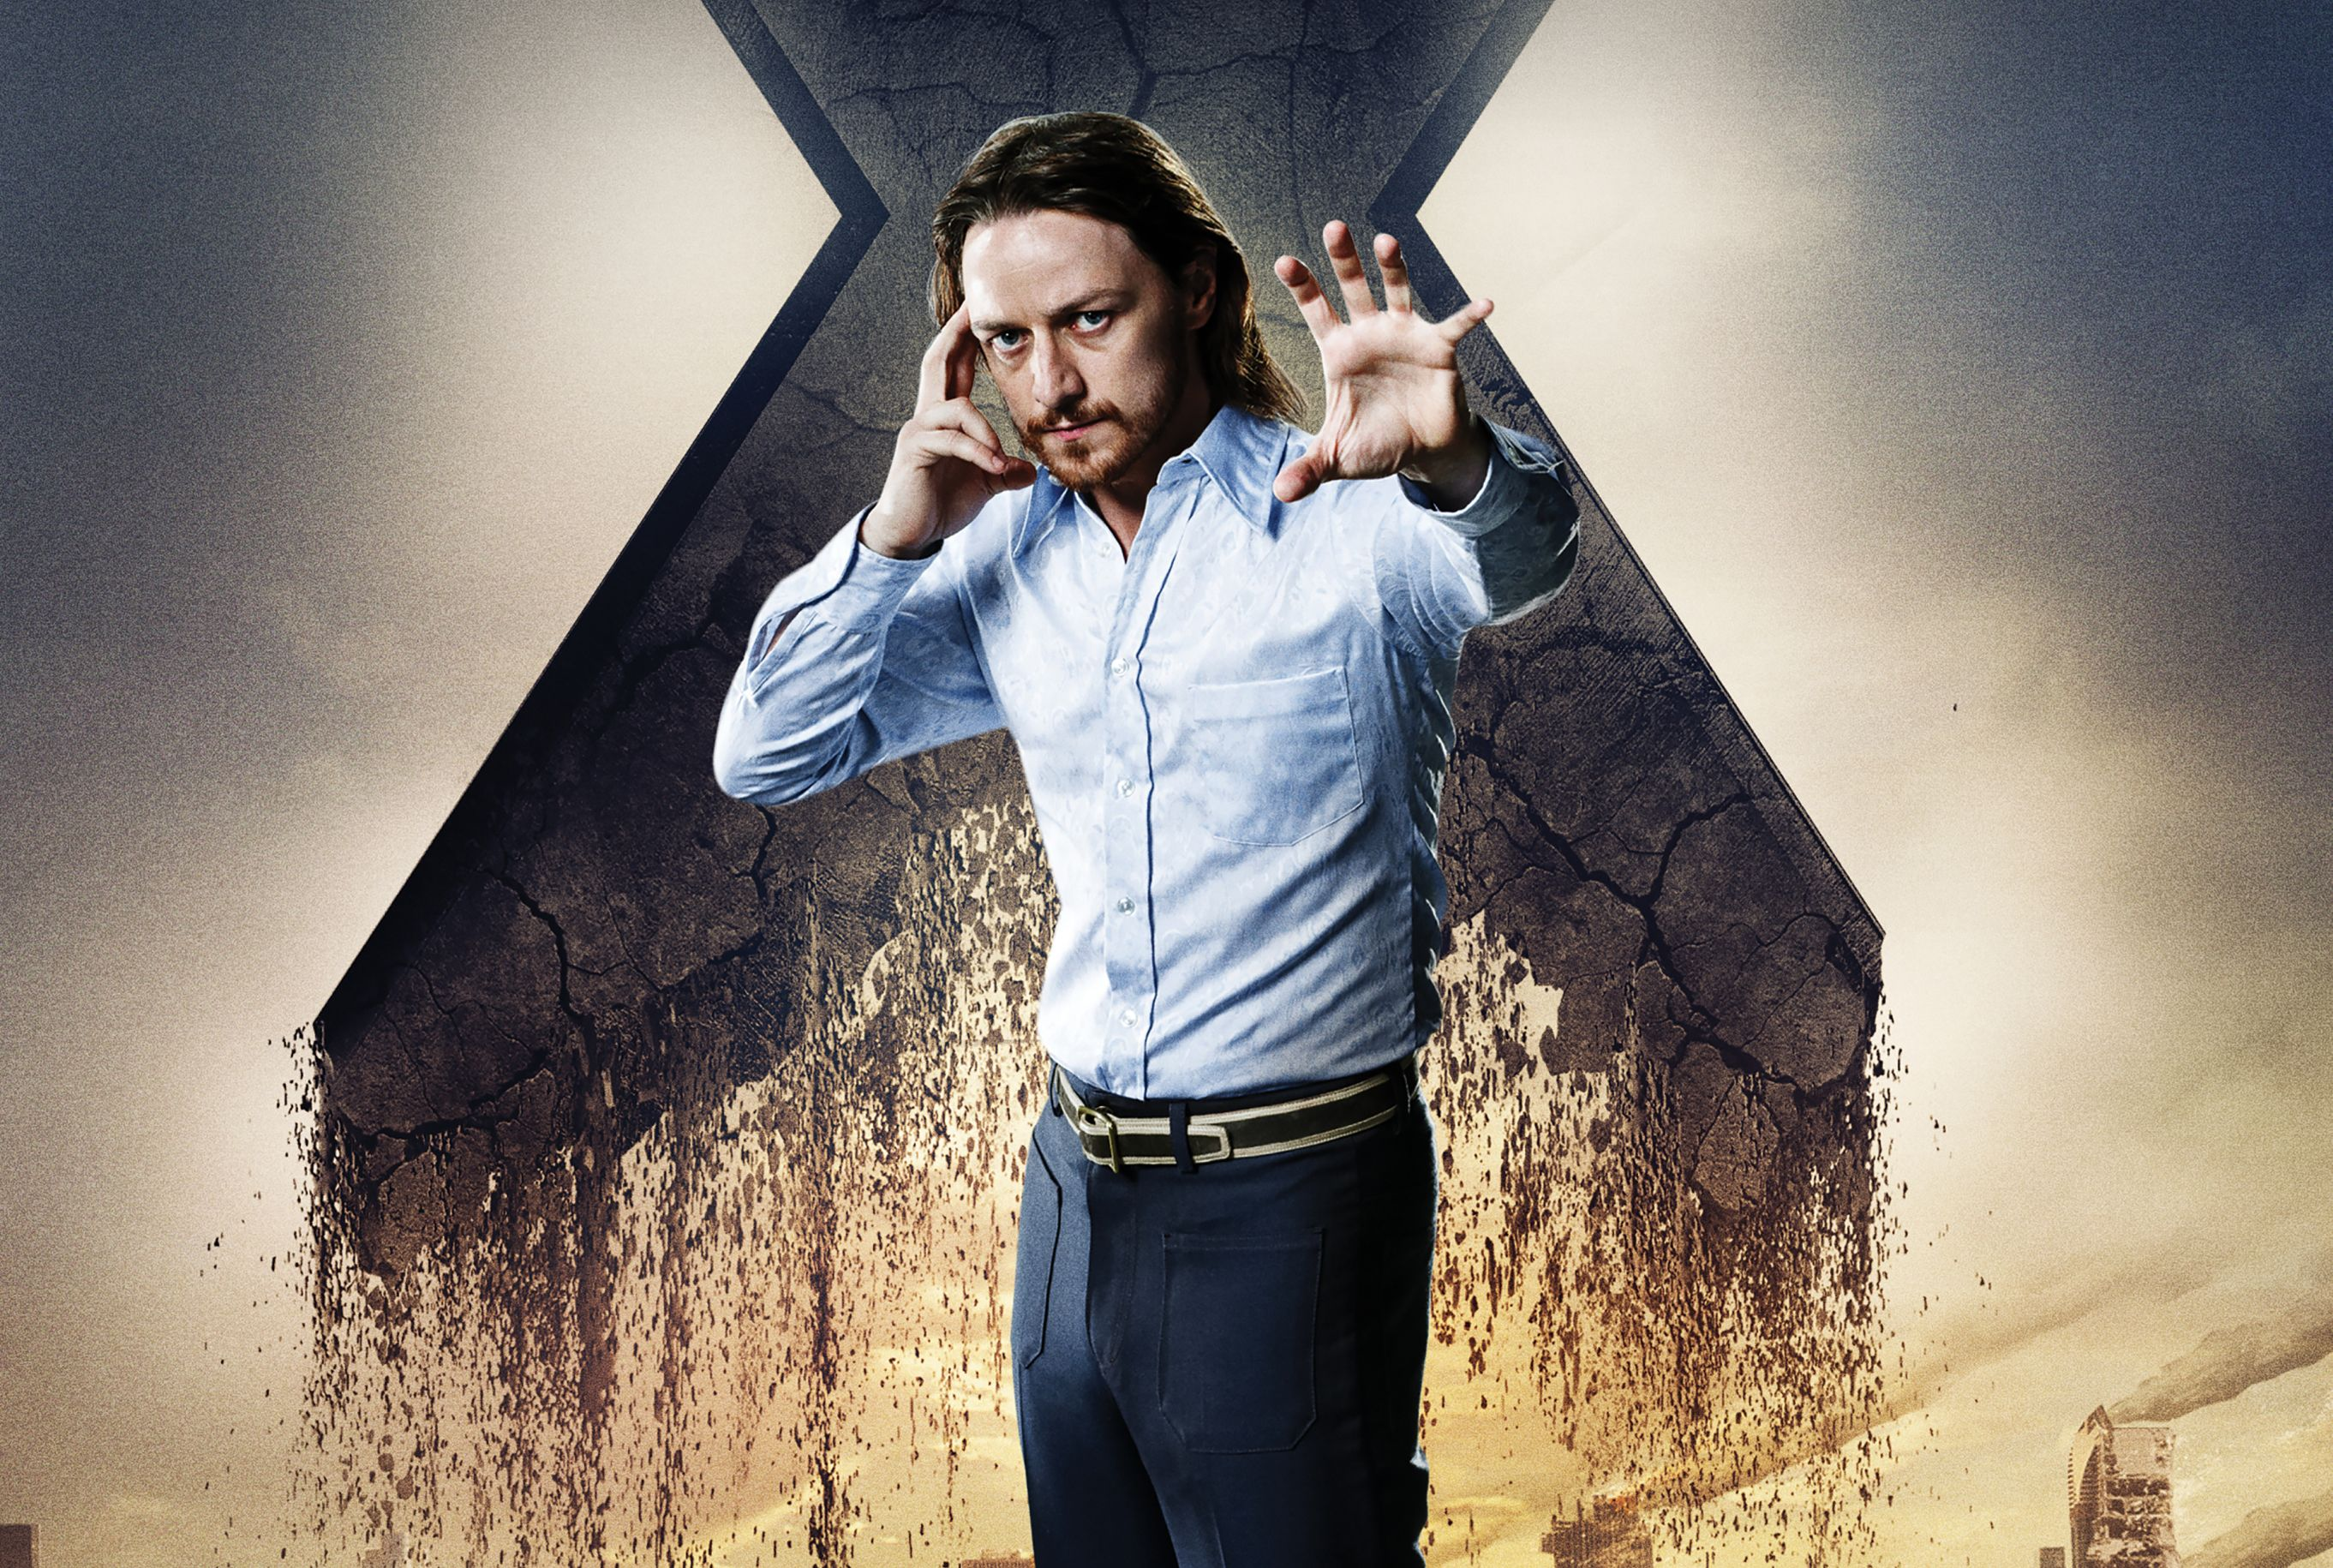 X Men Days Of Future Past Young Charles Xavier Wallpaper James Mcavoy Charles Xavier Celebrity Wallpapers